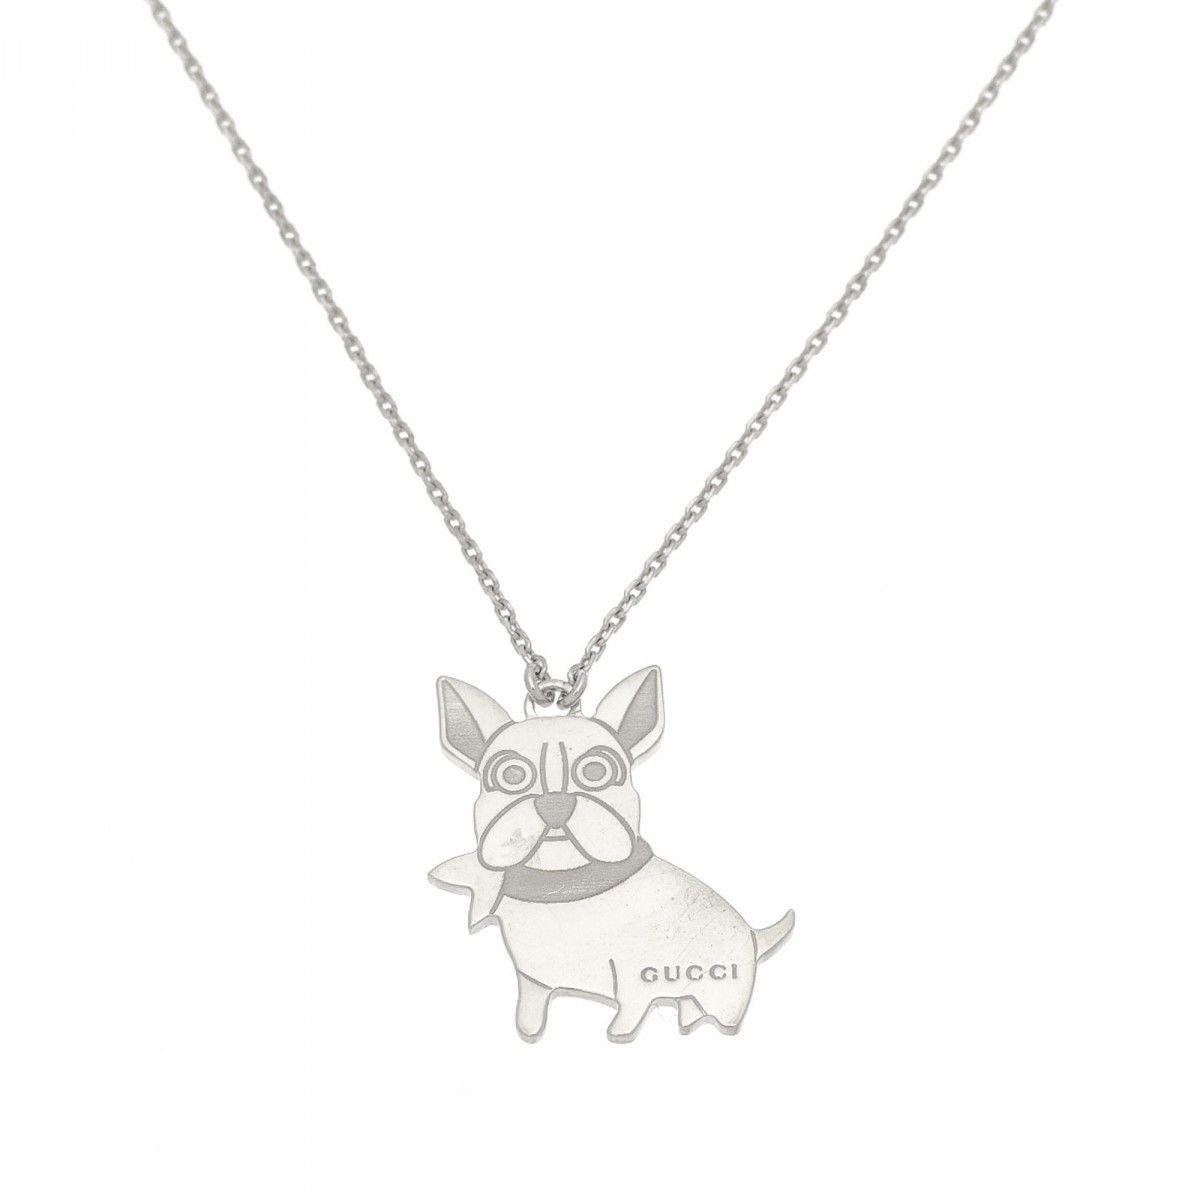 Gucci dog pendant necklace 50cm 925 sterling silver lxrandco pre gucci dog pendant necklace 50cm 925 sterling silver lxrandco pre owned luxury vintage aloadofball Choice Image